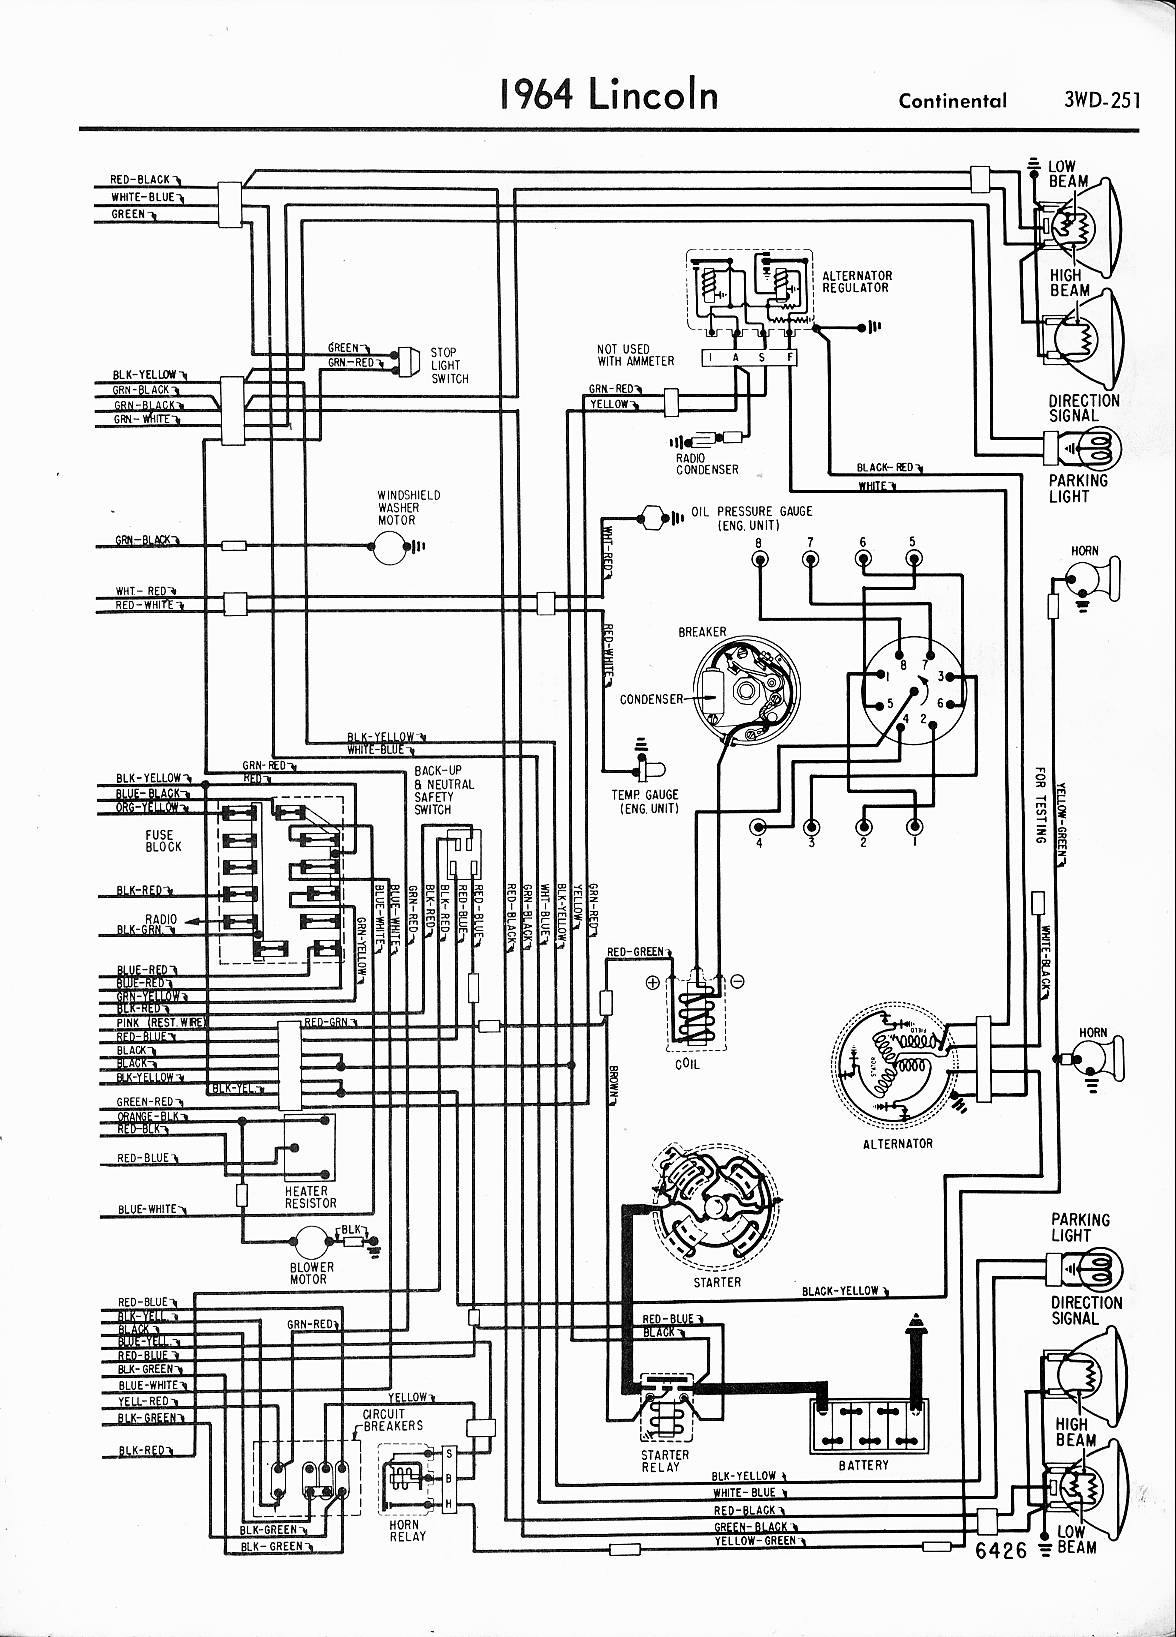 65 Lincoln Wiring Diagram